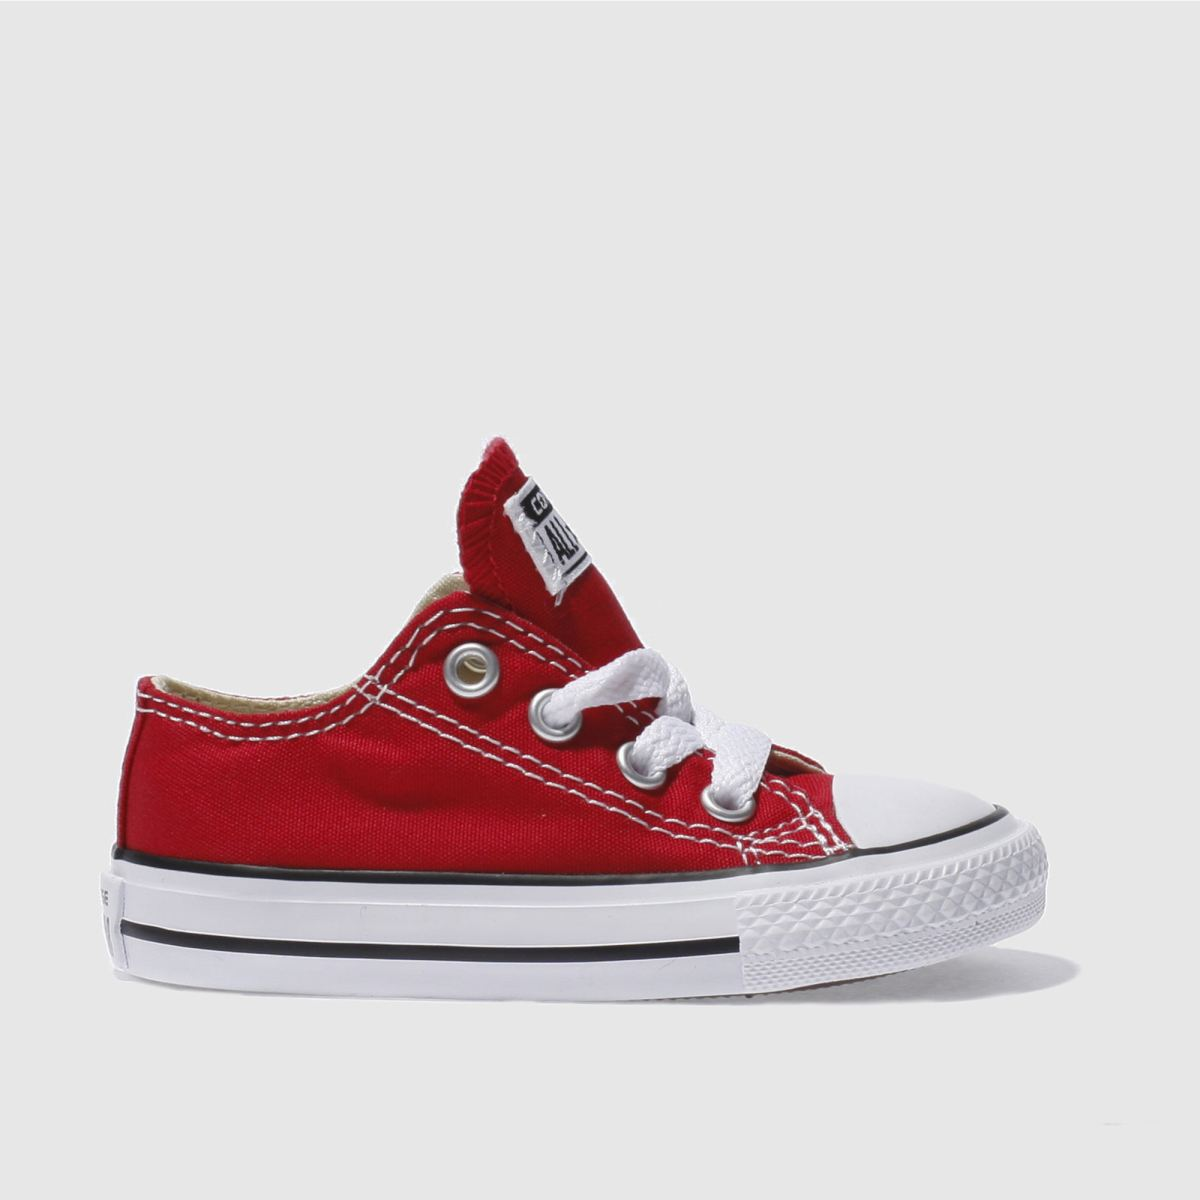 Converse Red All Star Lo Unisex Toddler Toddler